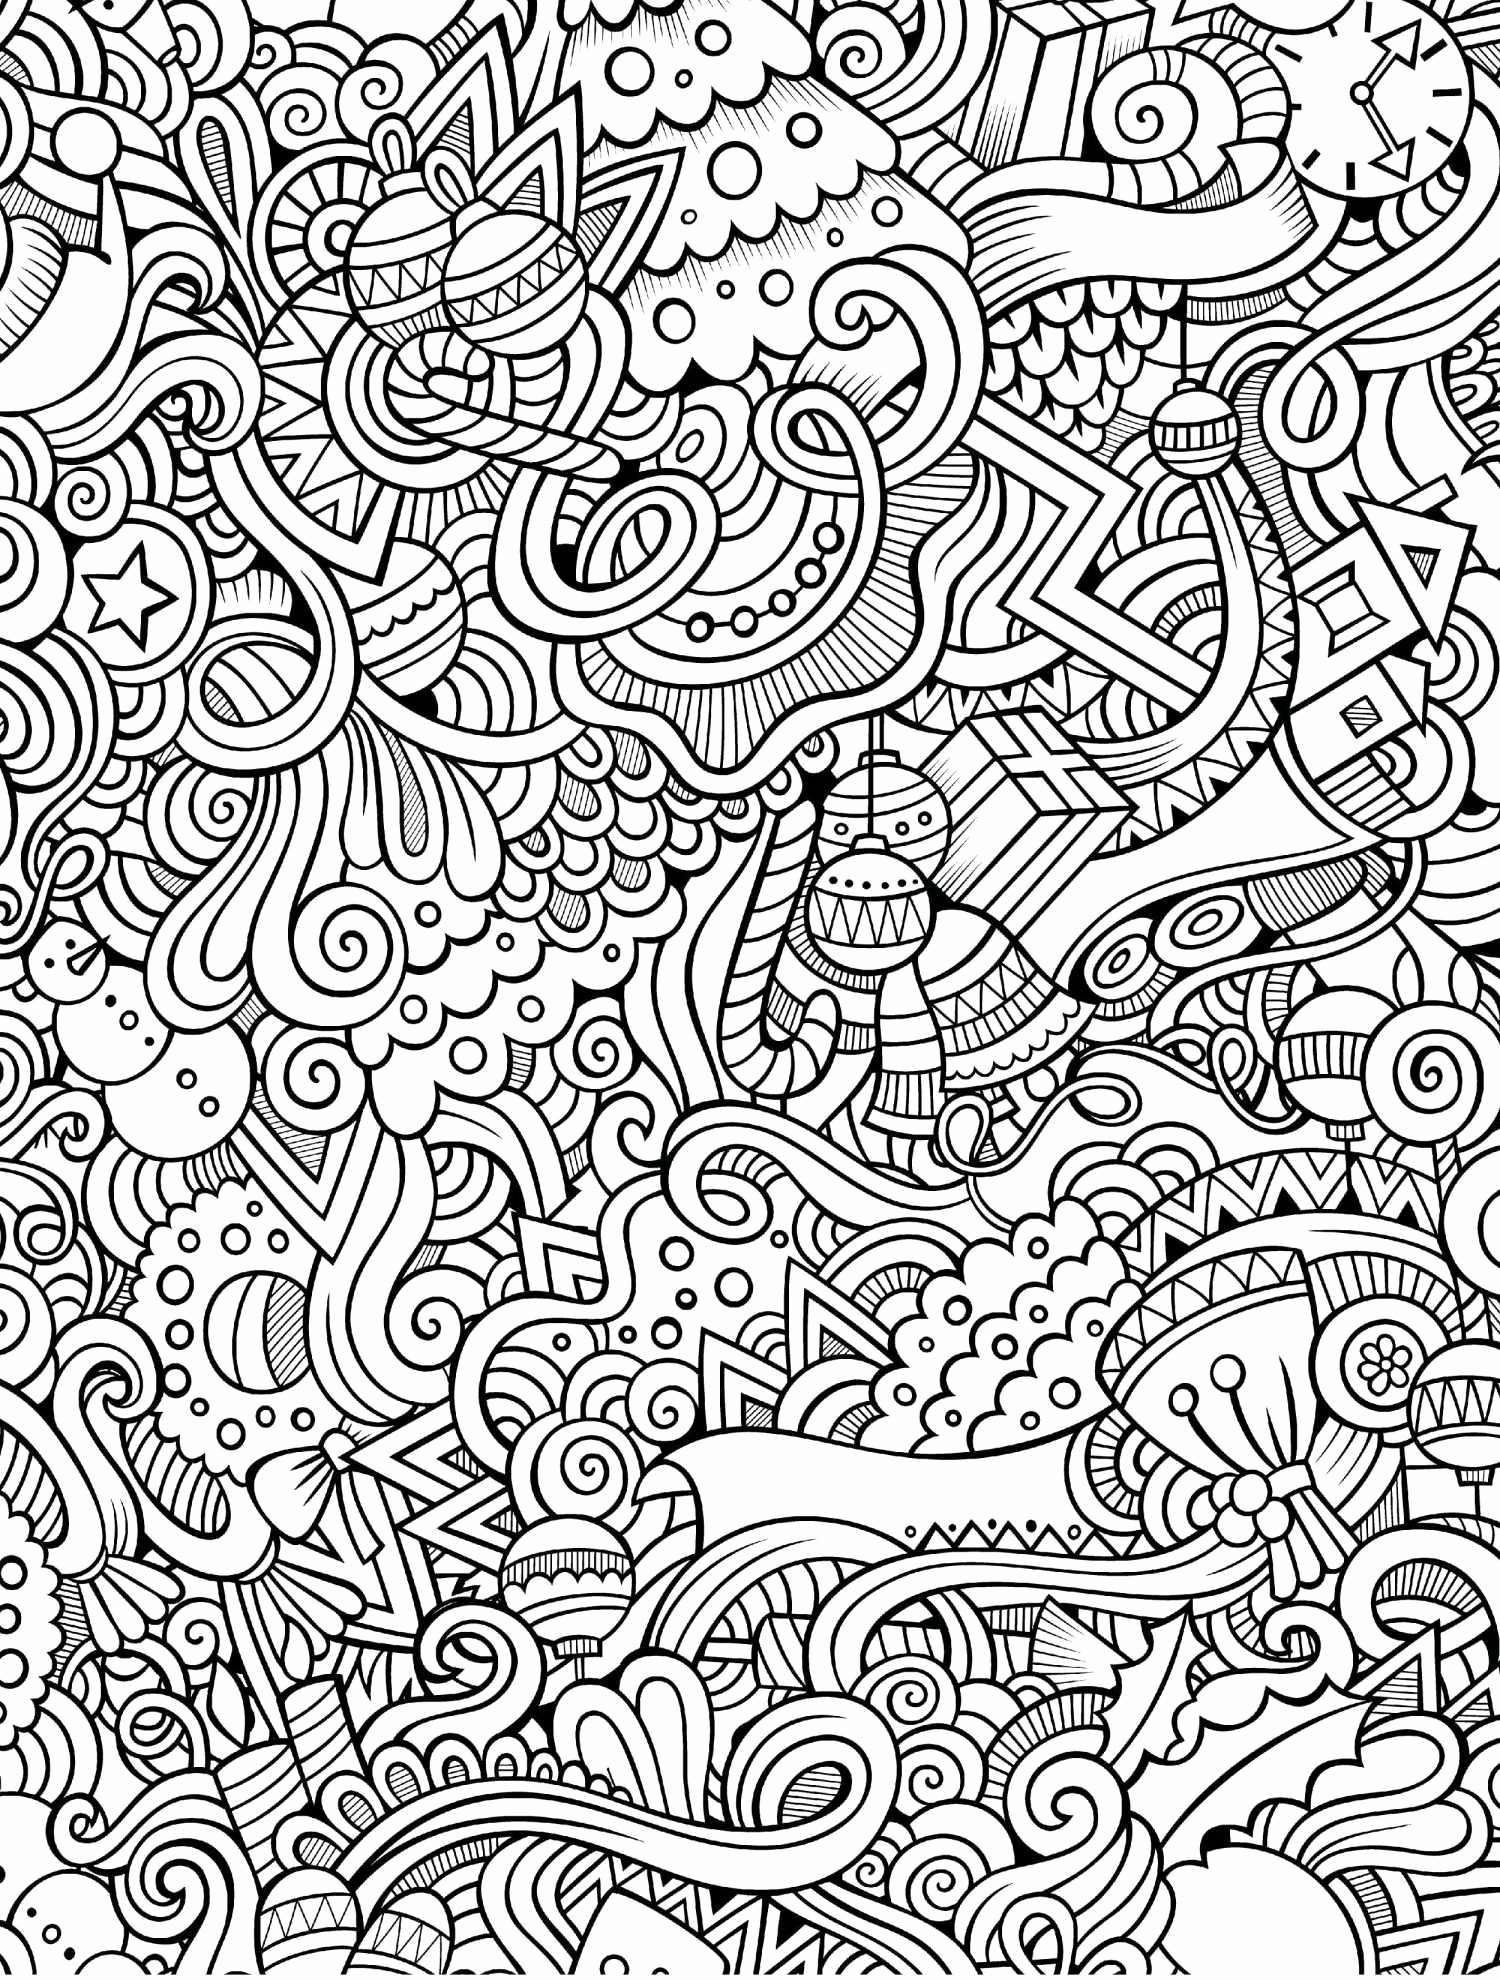 Christmas Coloring Pages For Older Students With Adults Printable Balls